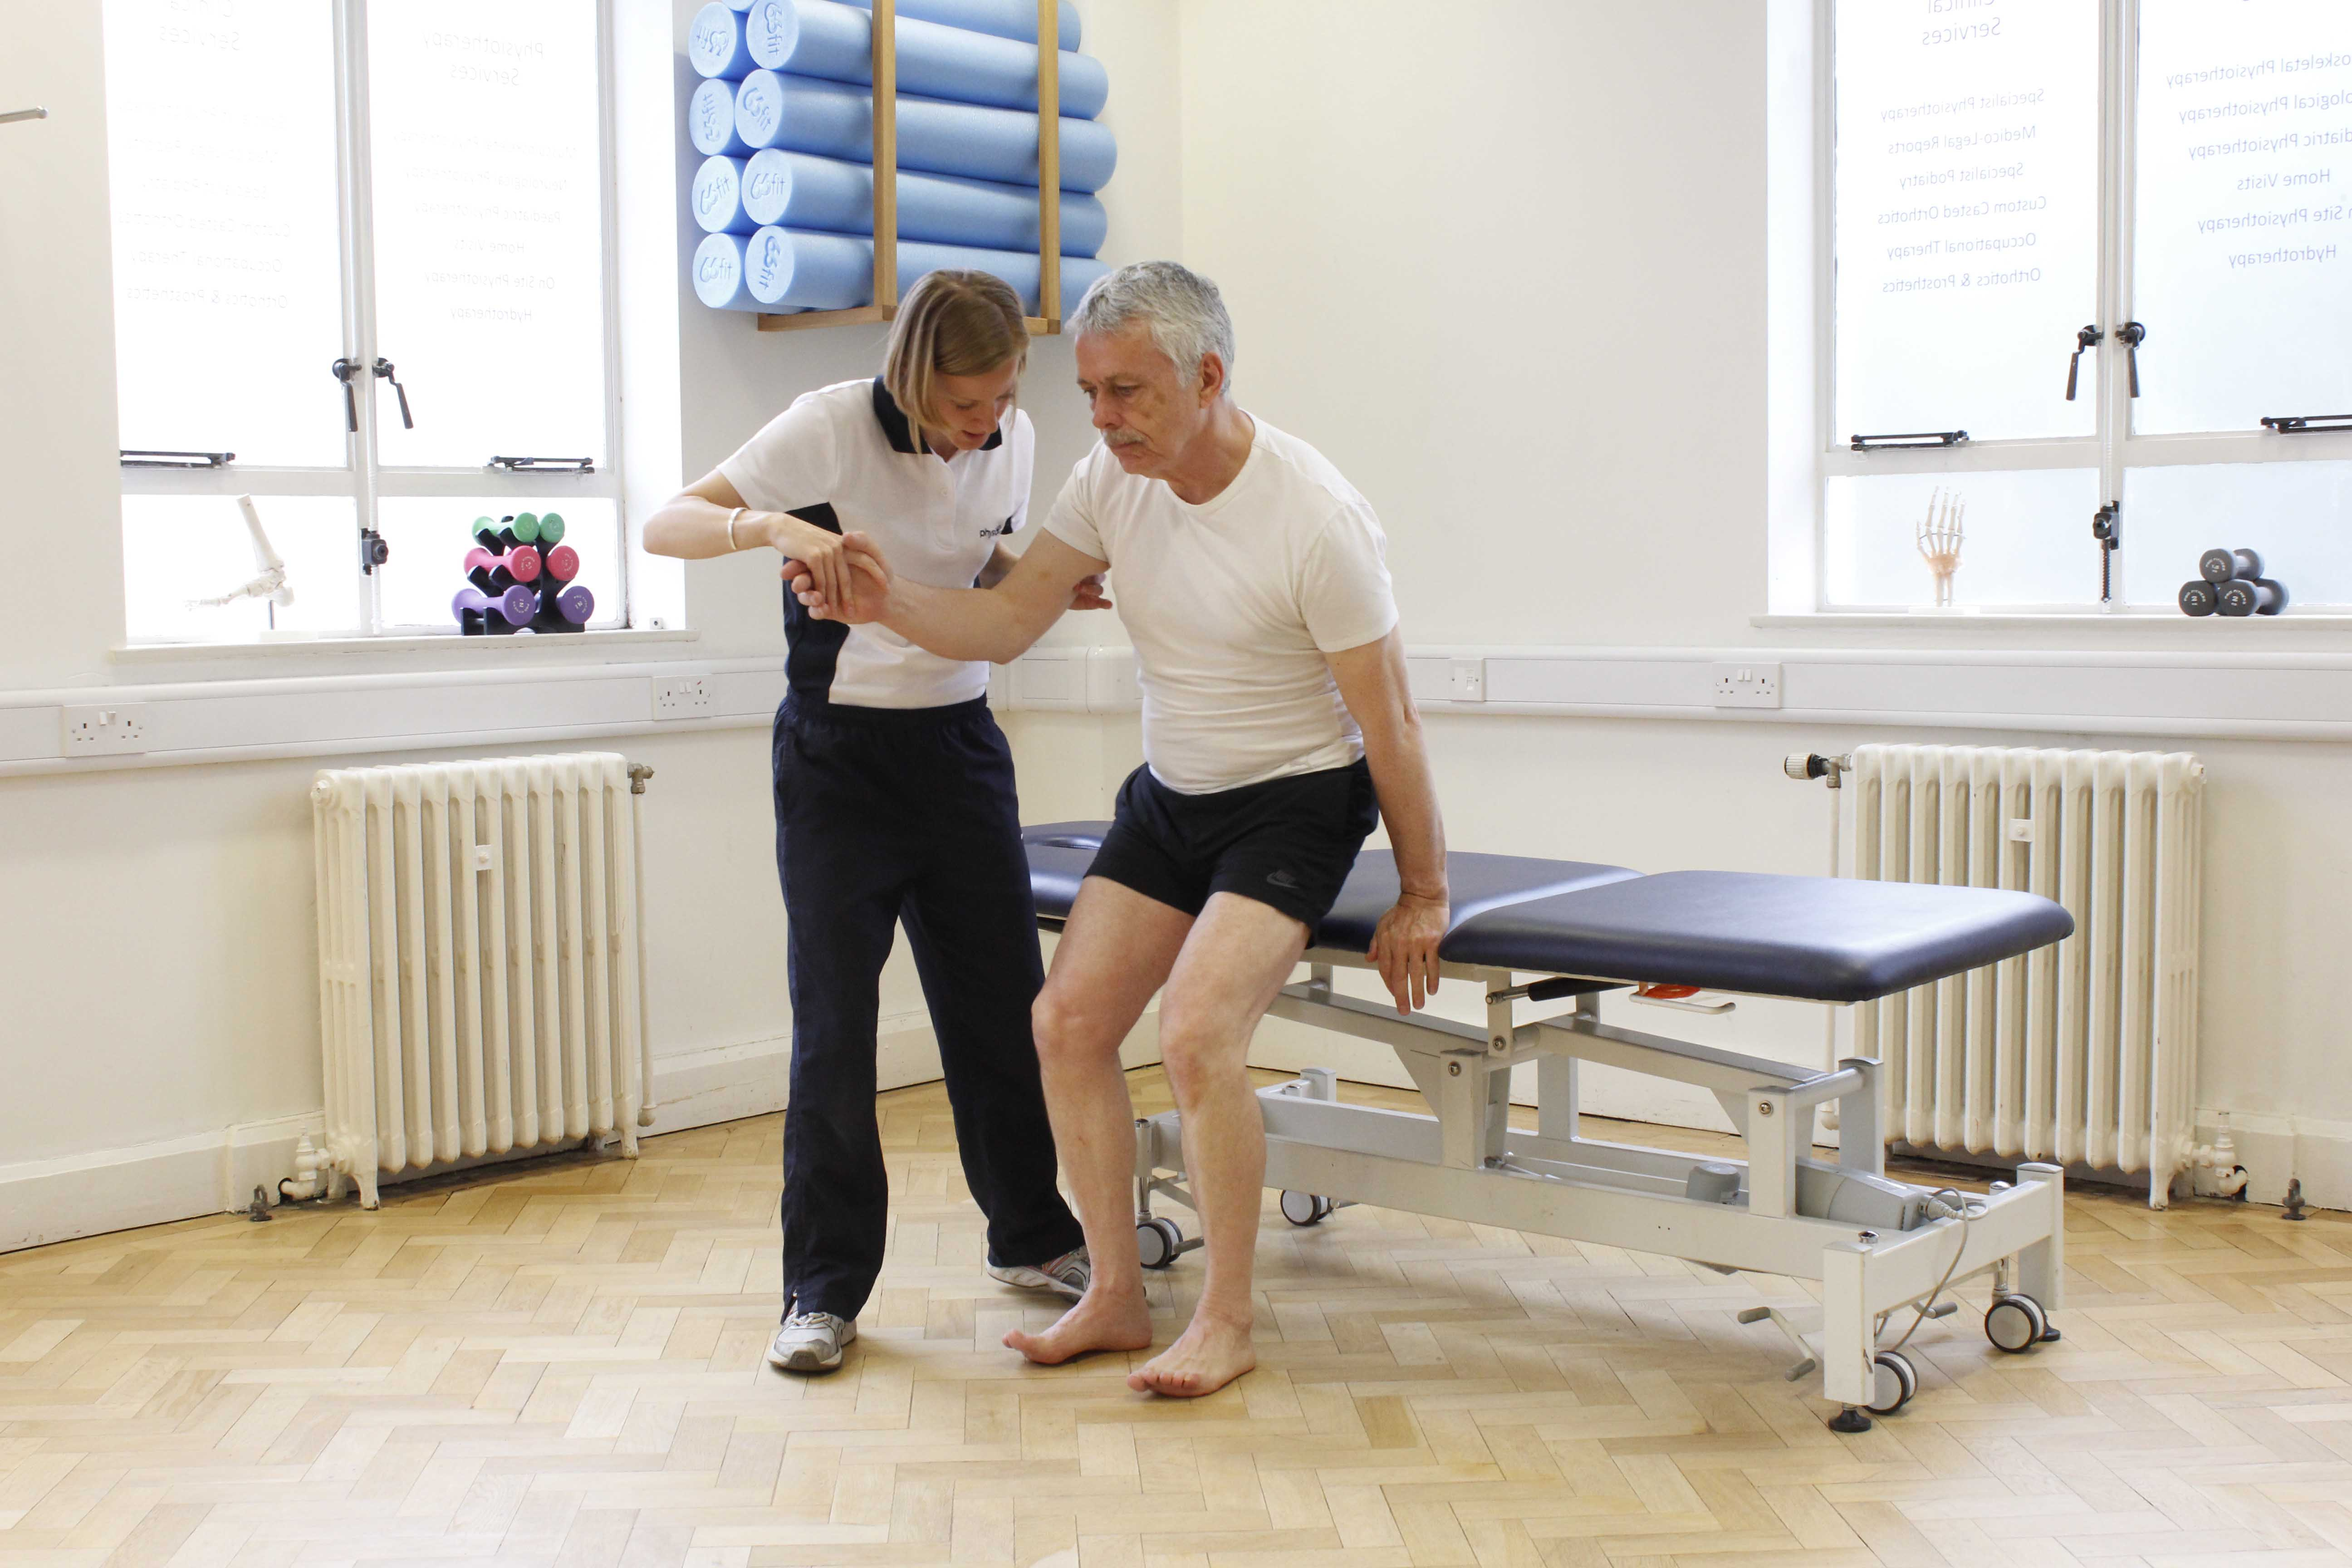 Neurological physiotherapist facilitating client transfers from stitting to standing